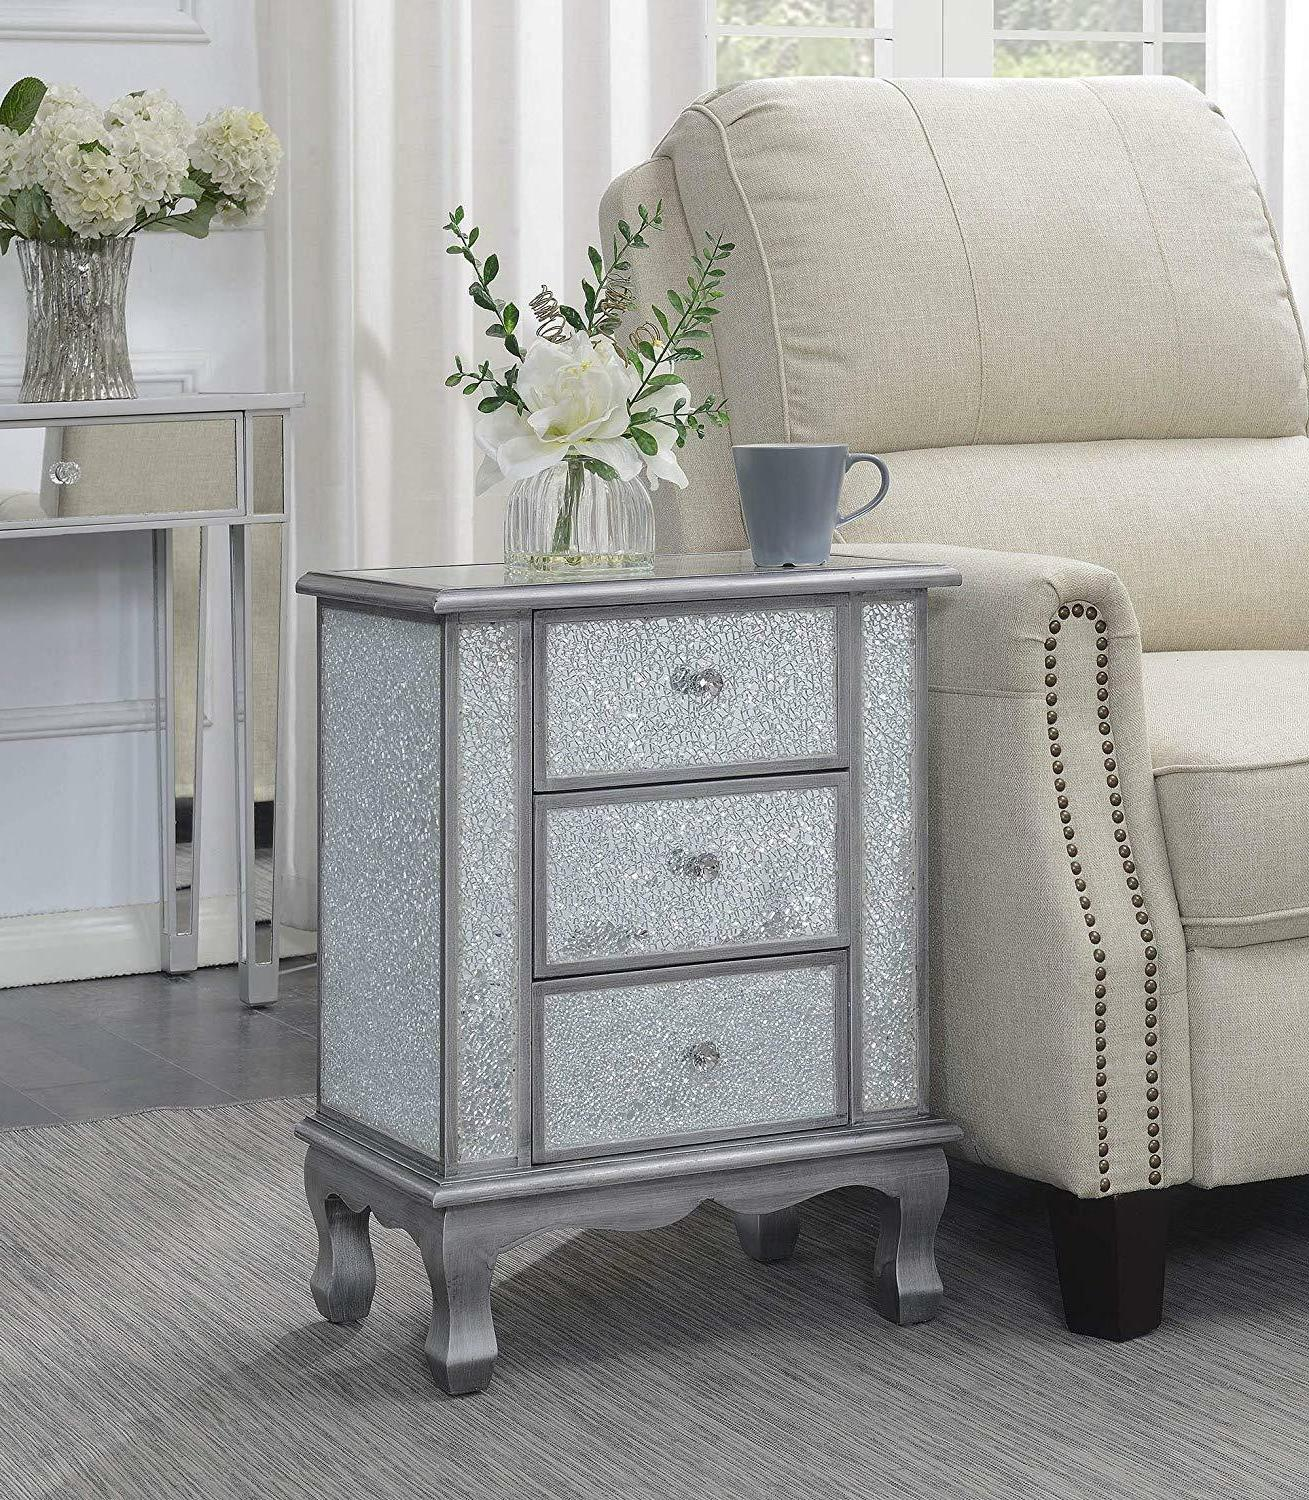 Convenience Concepts Collection 3-Drawer Mirrored Table,